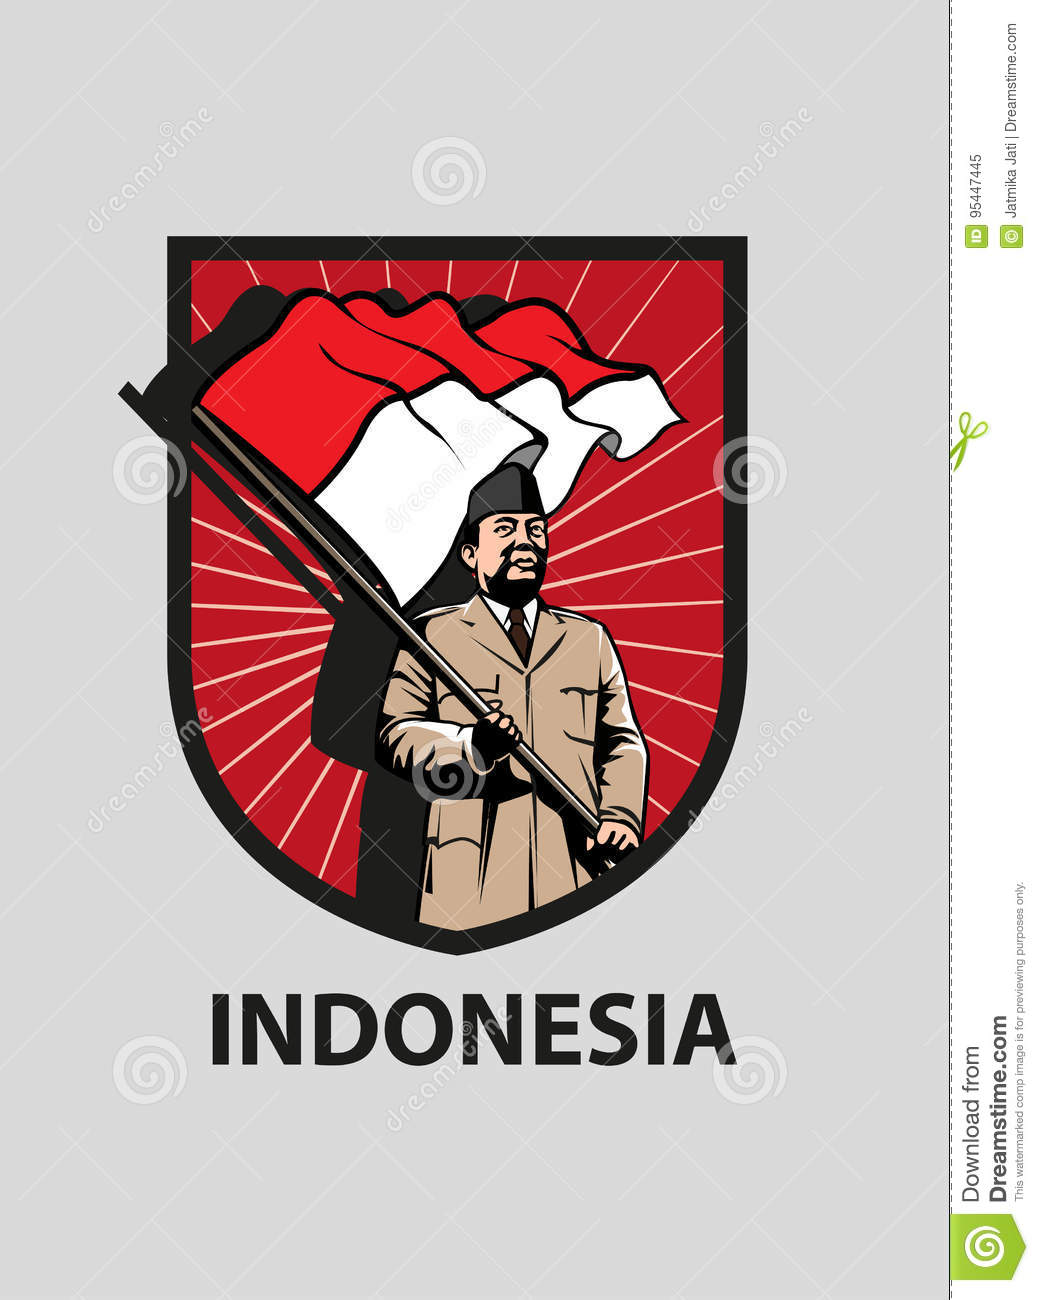 soekarno stock illustrations 26 soekarno stock illustrations vectors clipart dreamstime dreamstime com